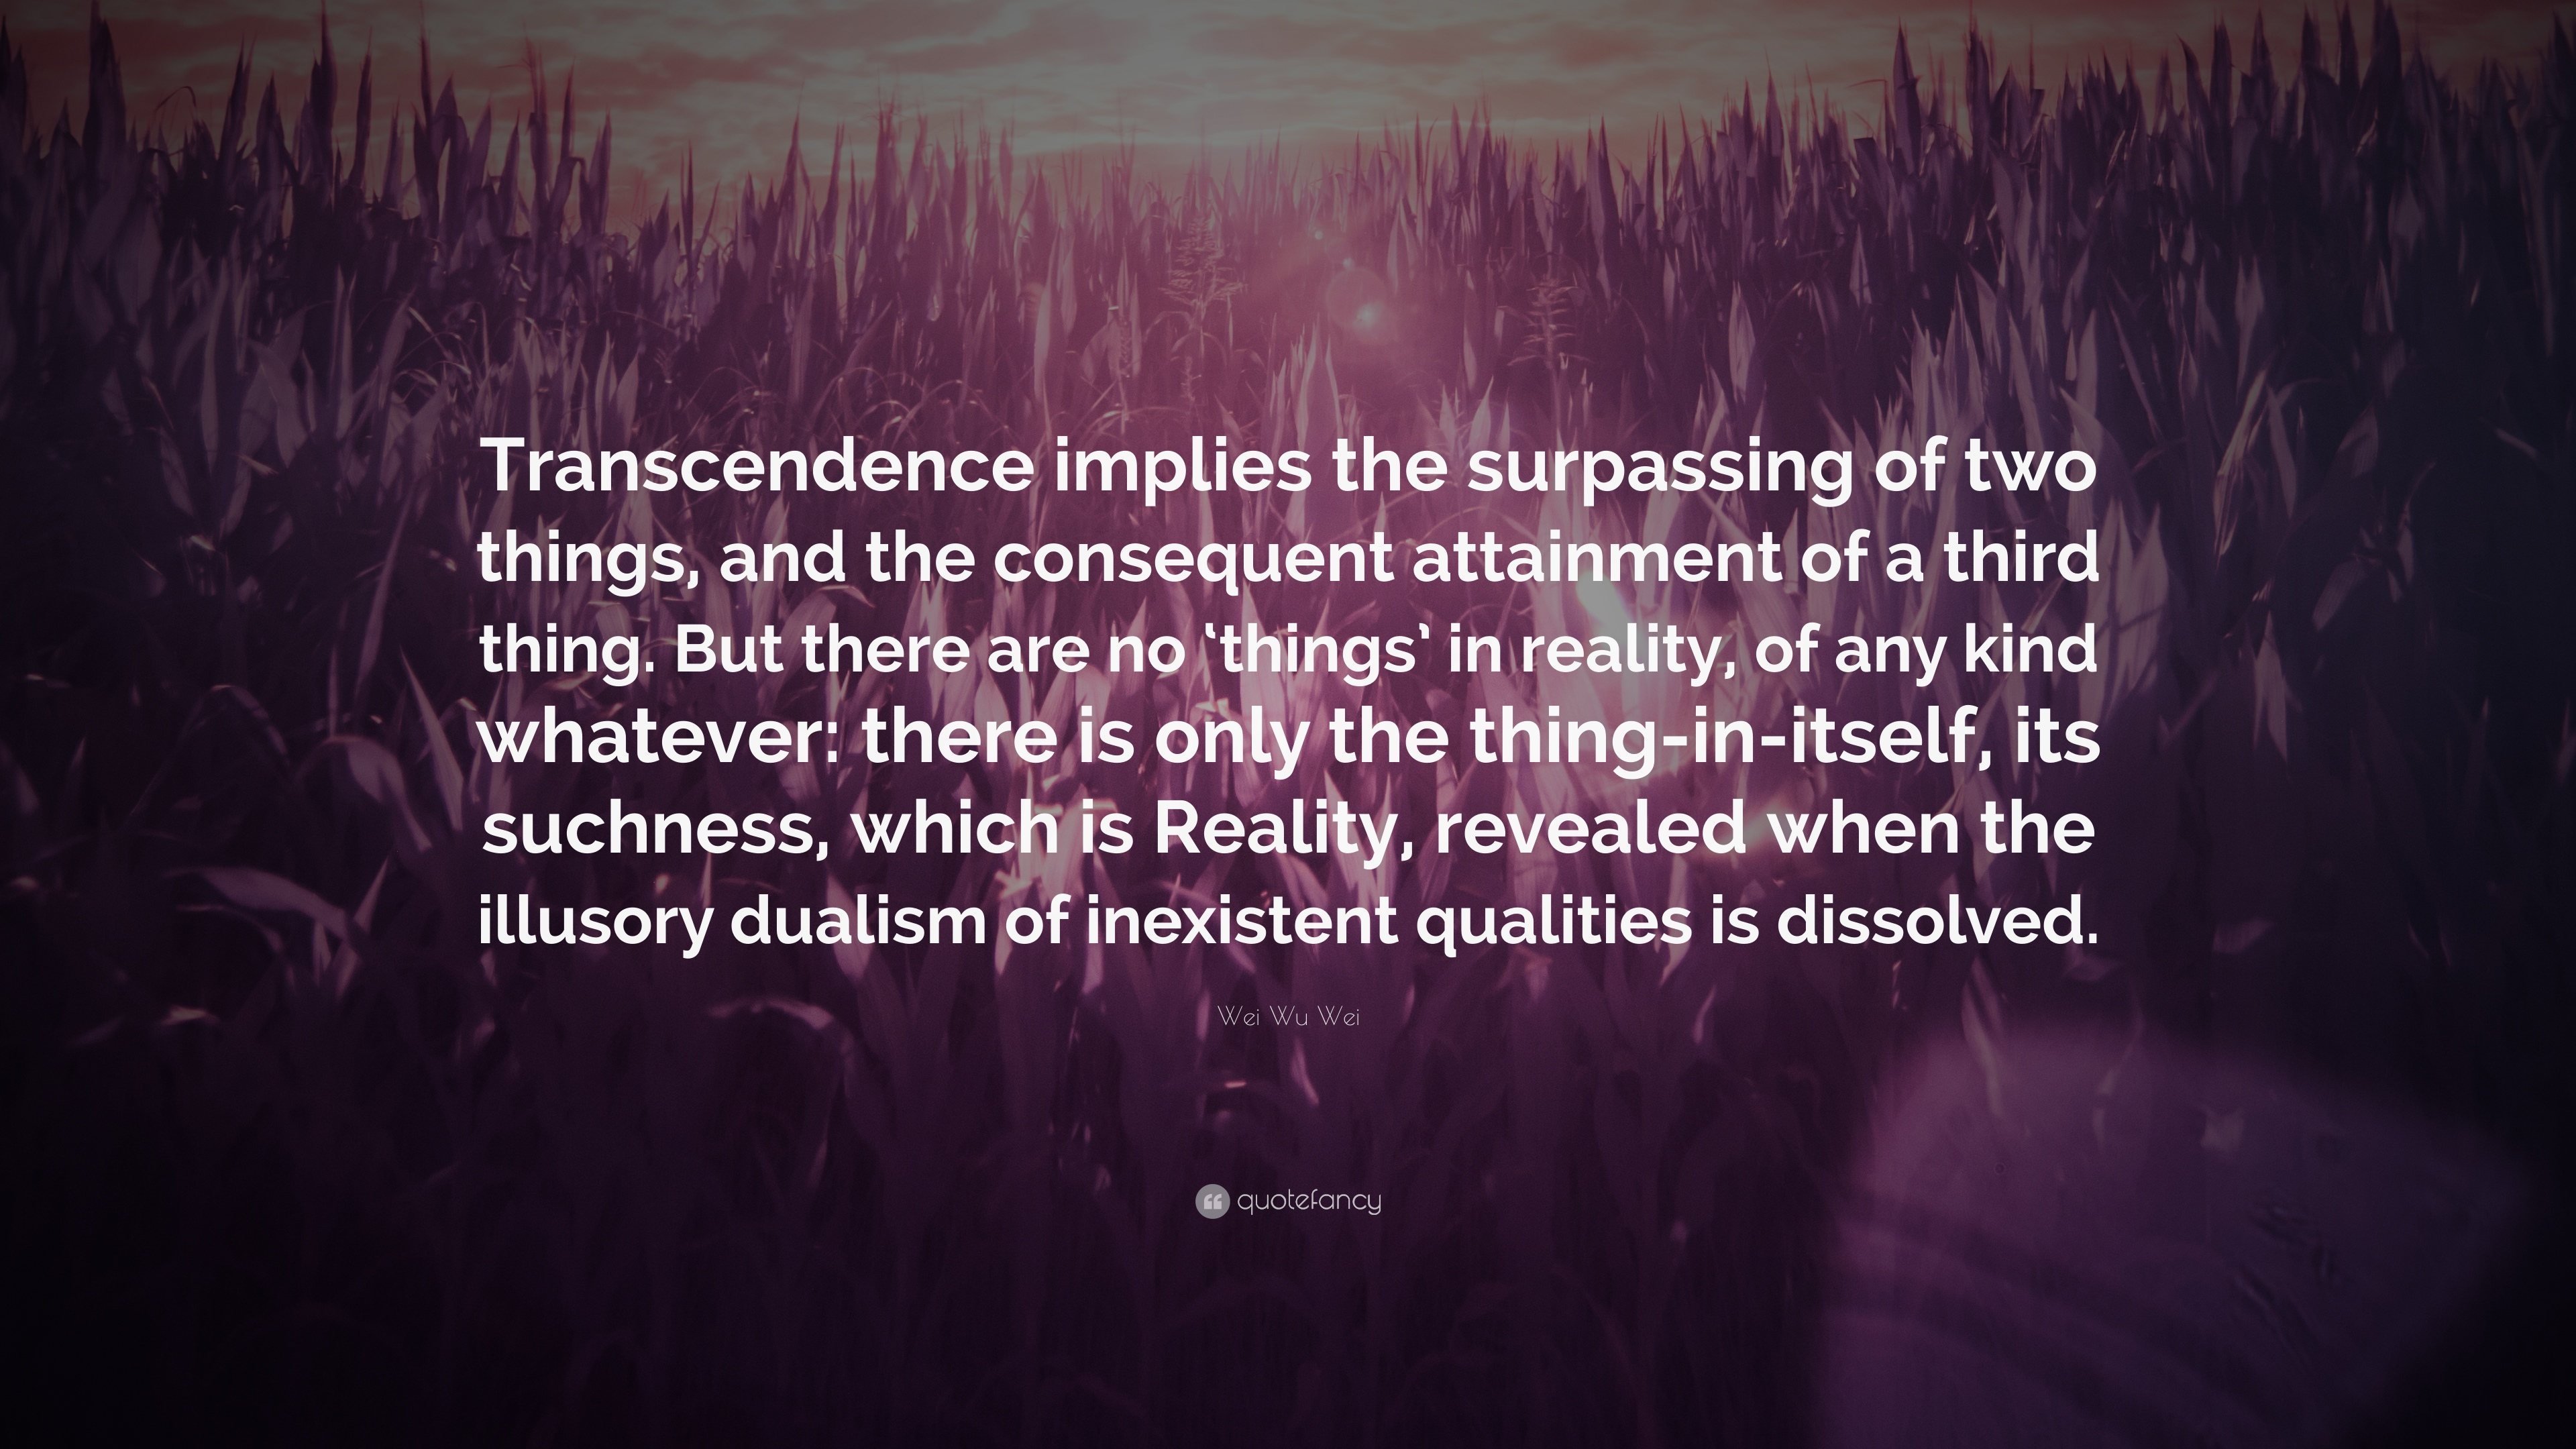 Wei Wu Wei Quote Transcendence Implies The Surpassing Of Two